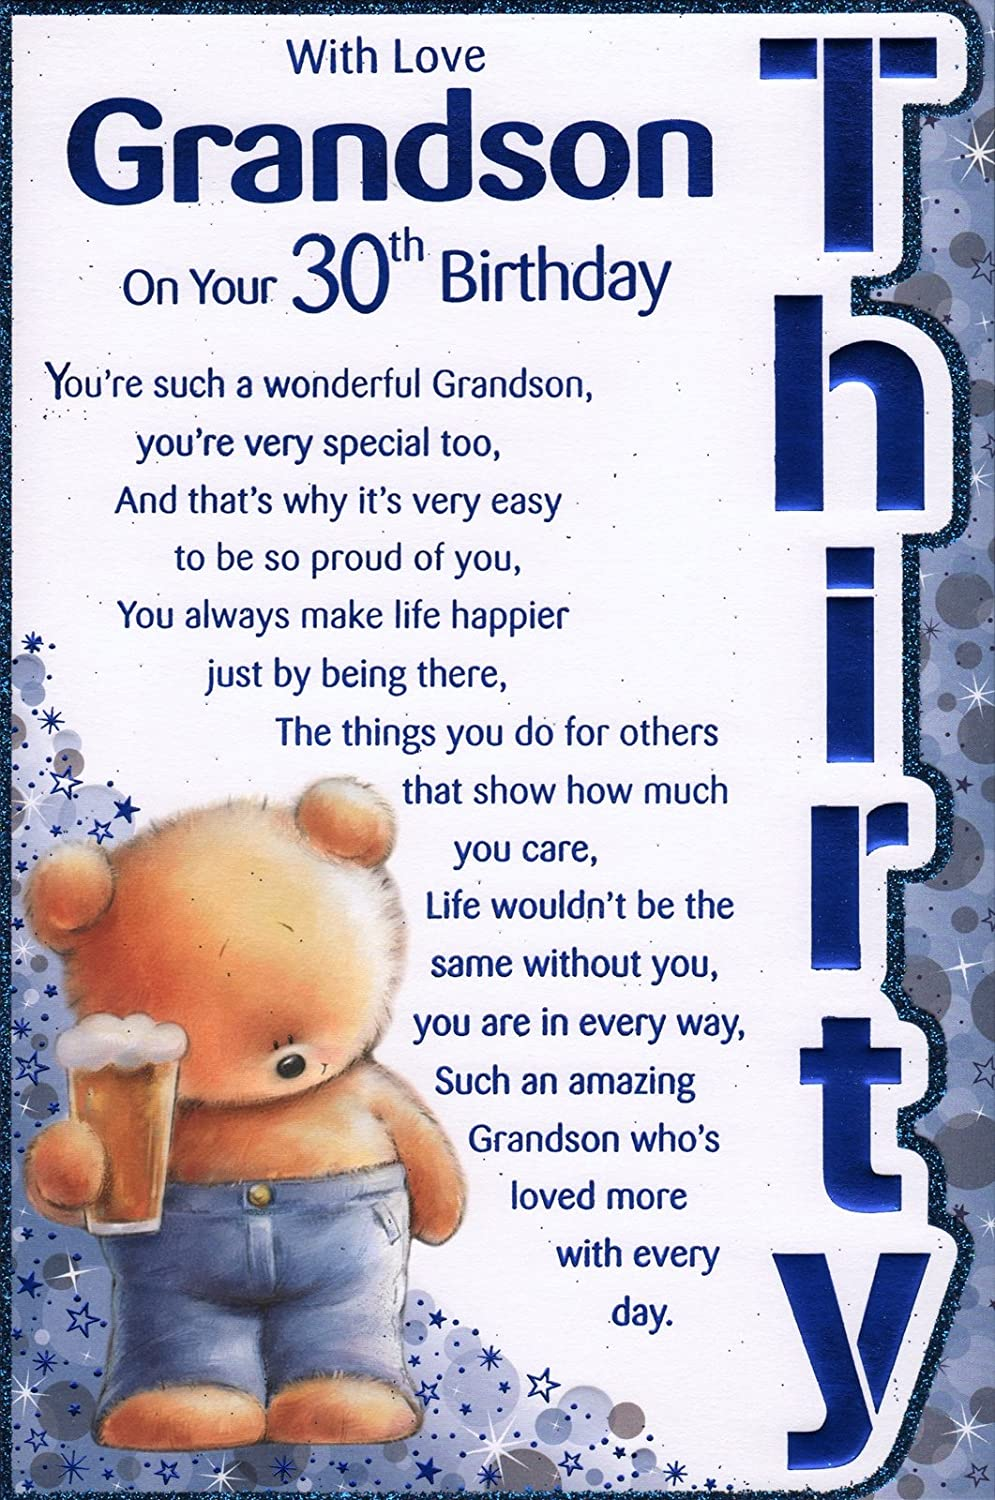 Grandsons 30th birthday card with love grandson on your 30th grandsons 30th birthday card with love grandson on your 30th birthday great quality card amazon office products kristyandbryce Choice Image